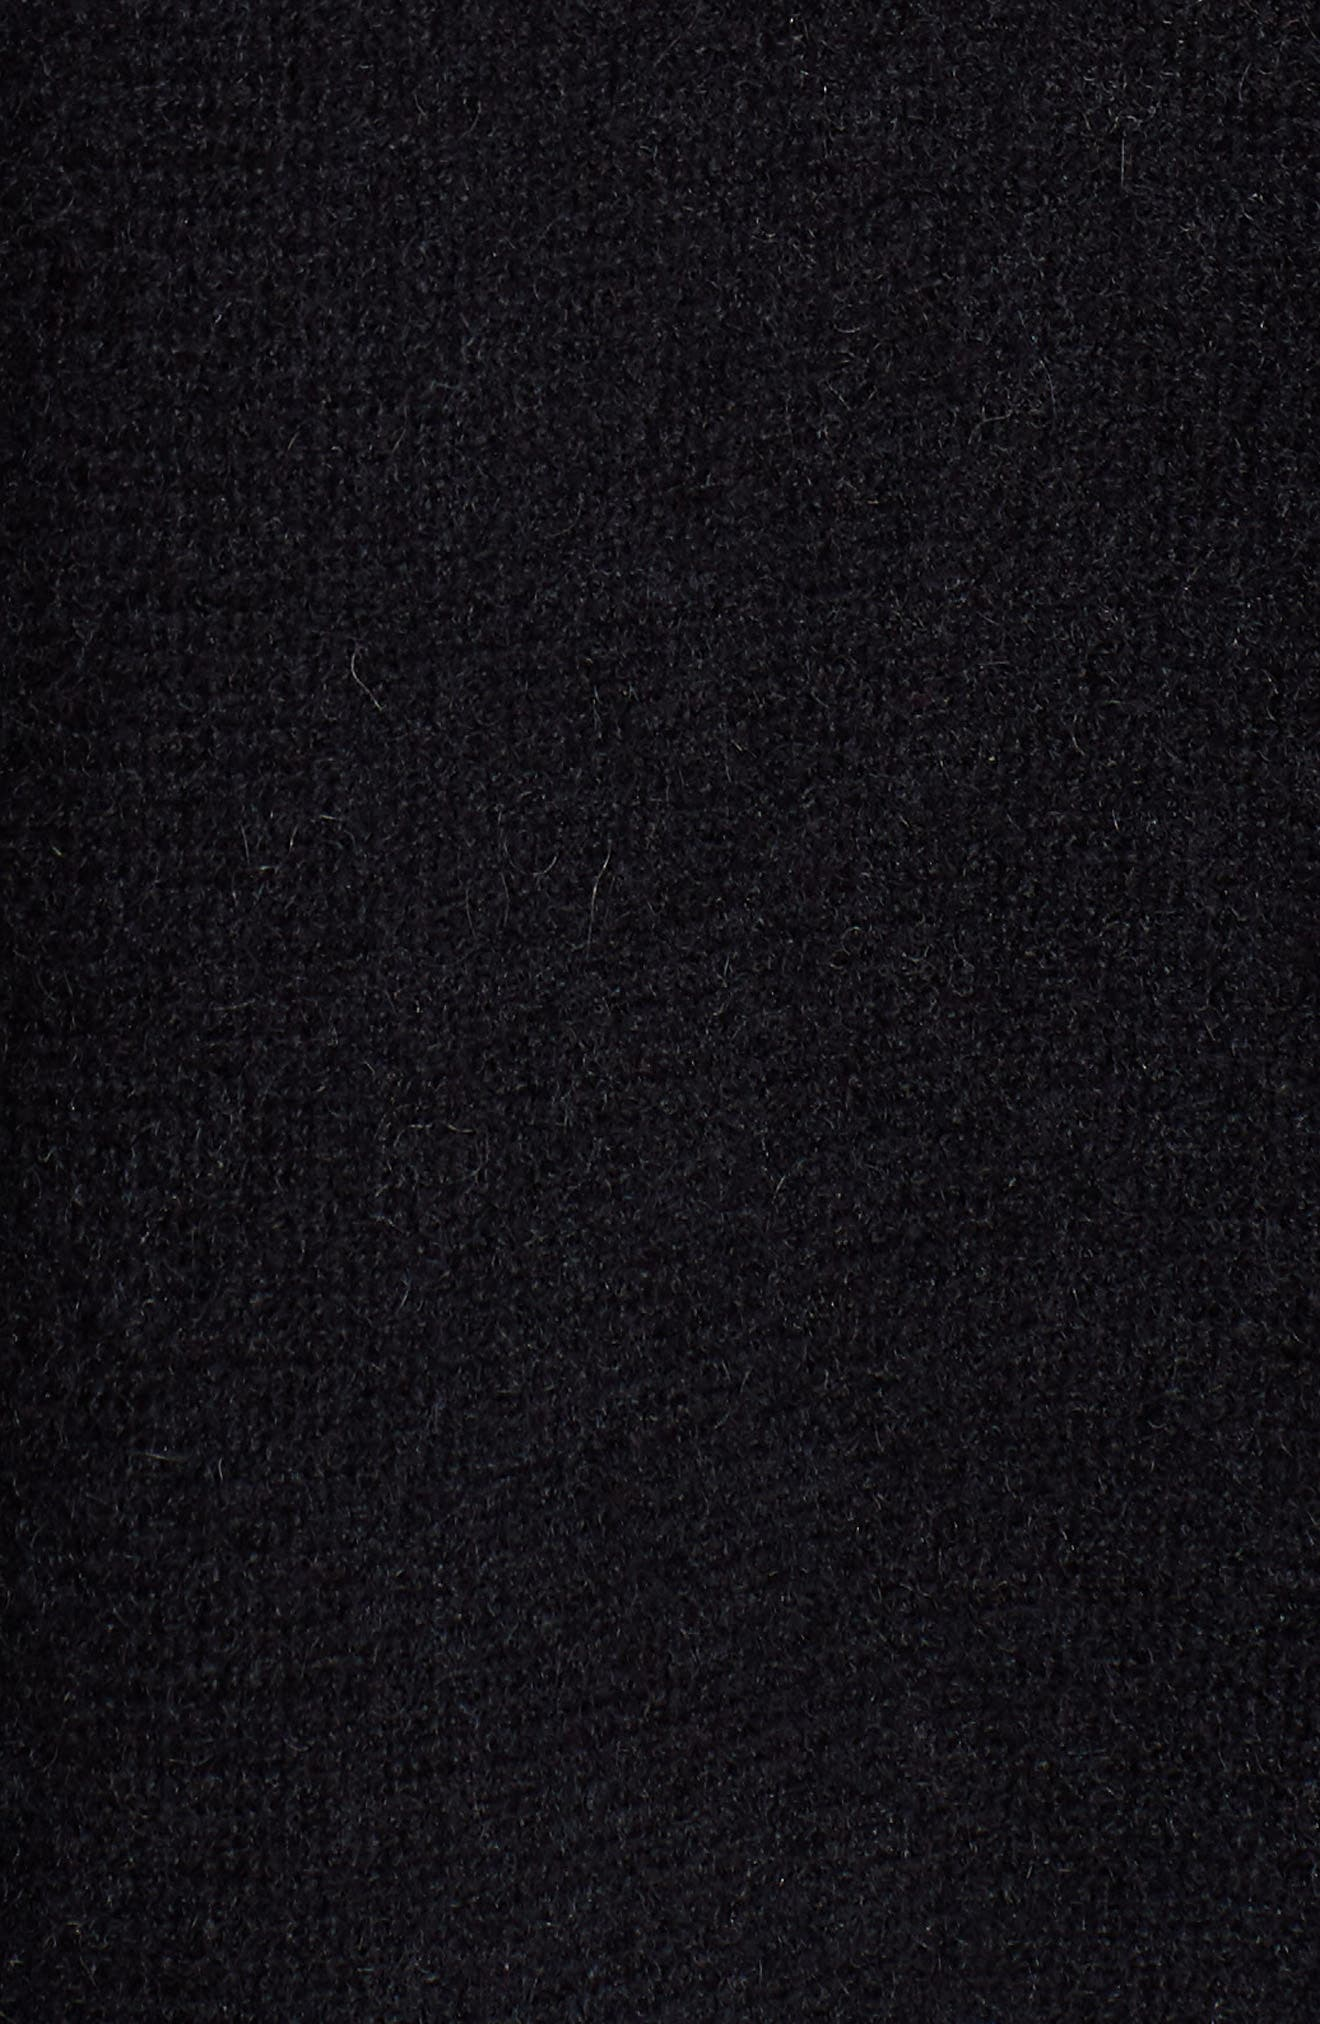 Cashmere Cardigan,                             Alternate thumbnail 5, color,                             BLACK